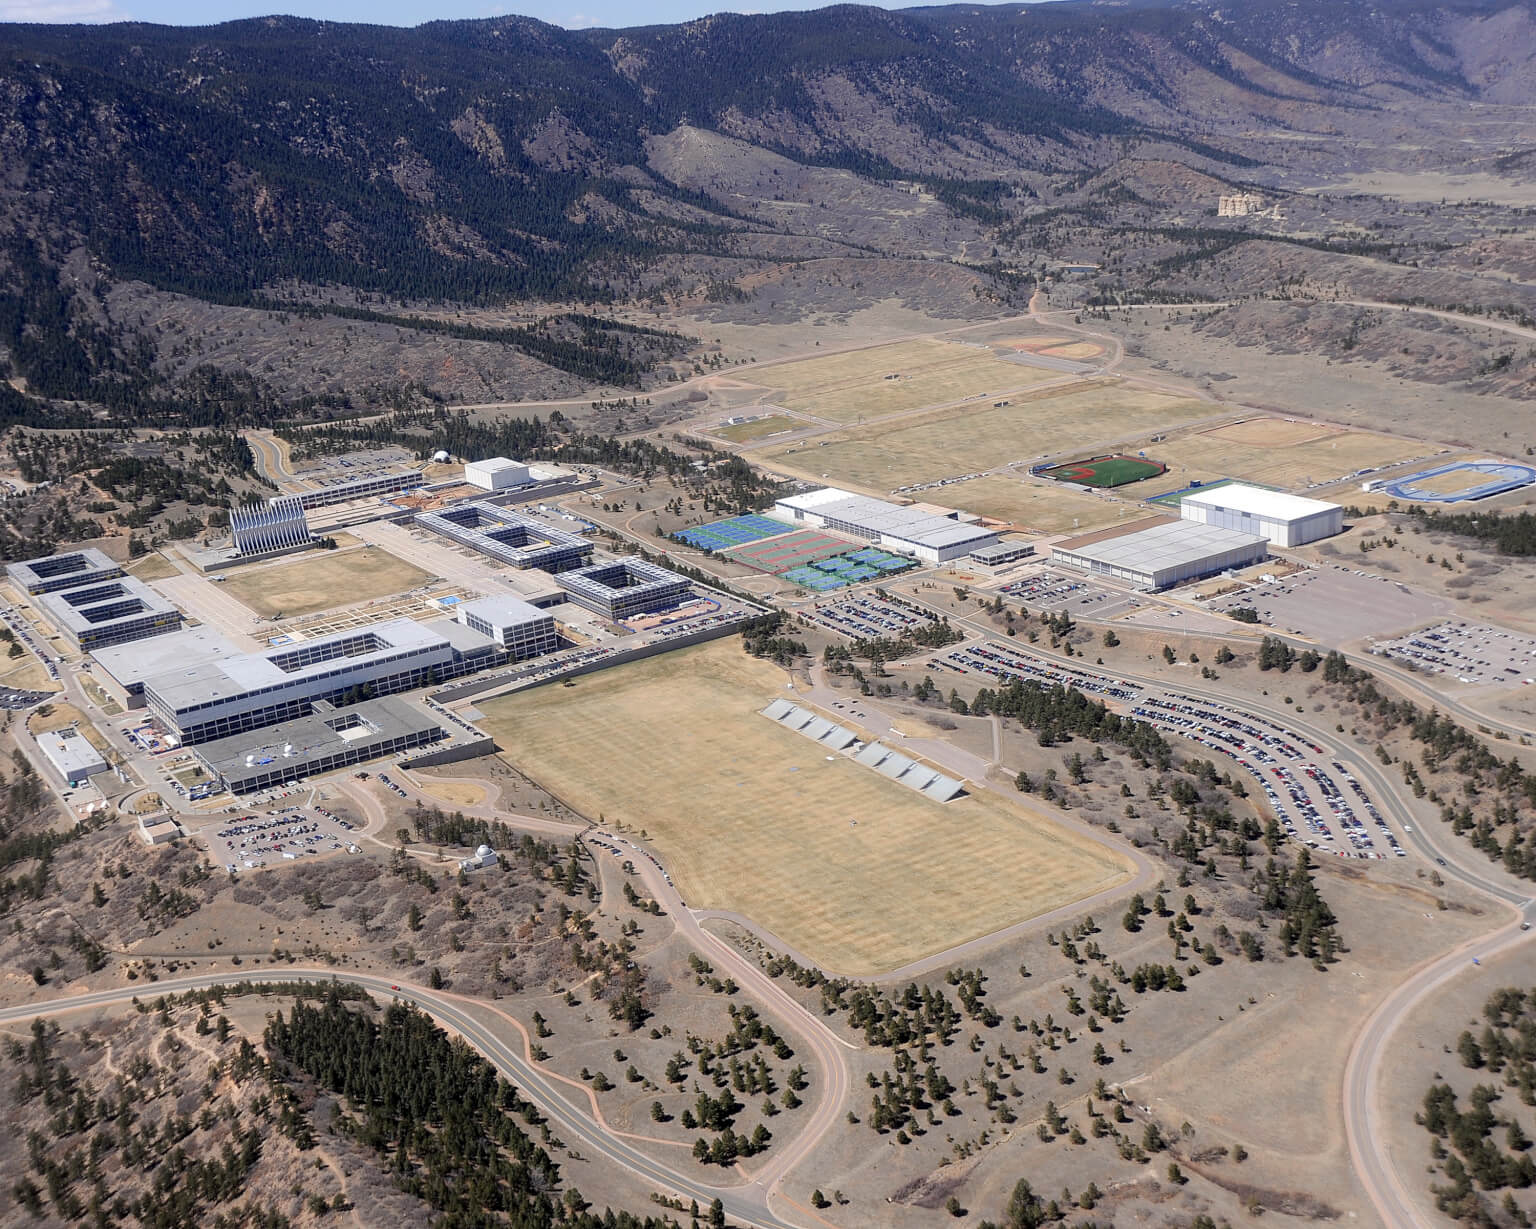 Aerial view of US Air Force Academy